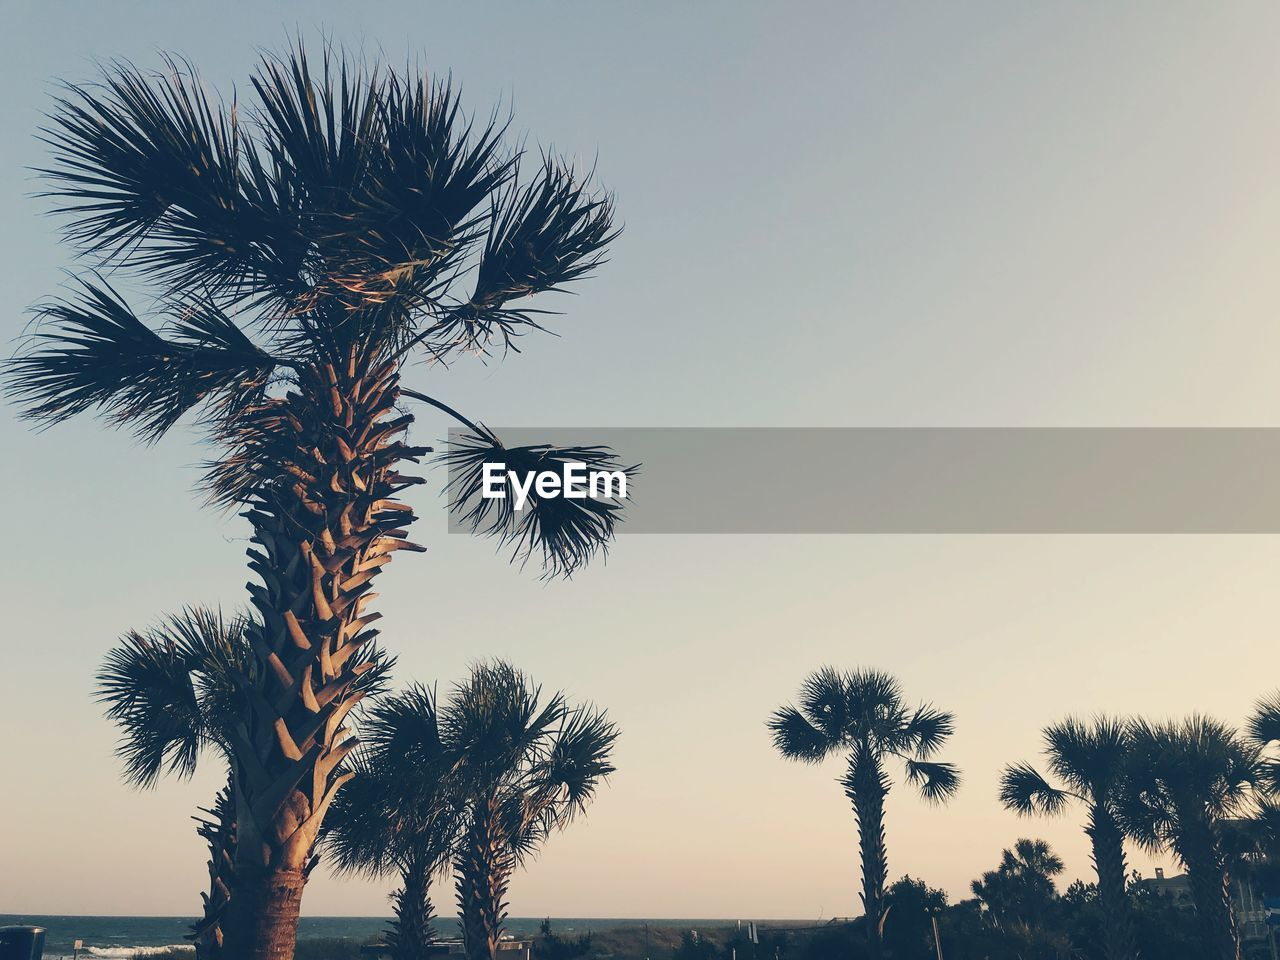 sky, tree, plant, palm tree, tropical climate, tranquility, beauty in nature, sunset, growth, scenics - nature, no people, nature, tranquil scene, trunk, clear sky, tree trunk, low angle view, silhouette, copy space, outdoors, coconut palm tree, tropical tree, palm leaf